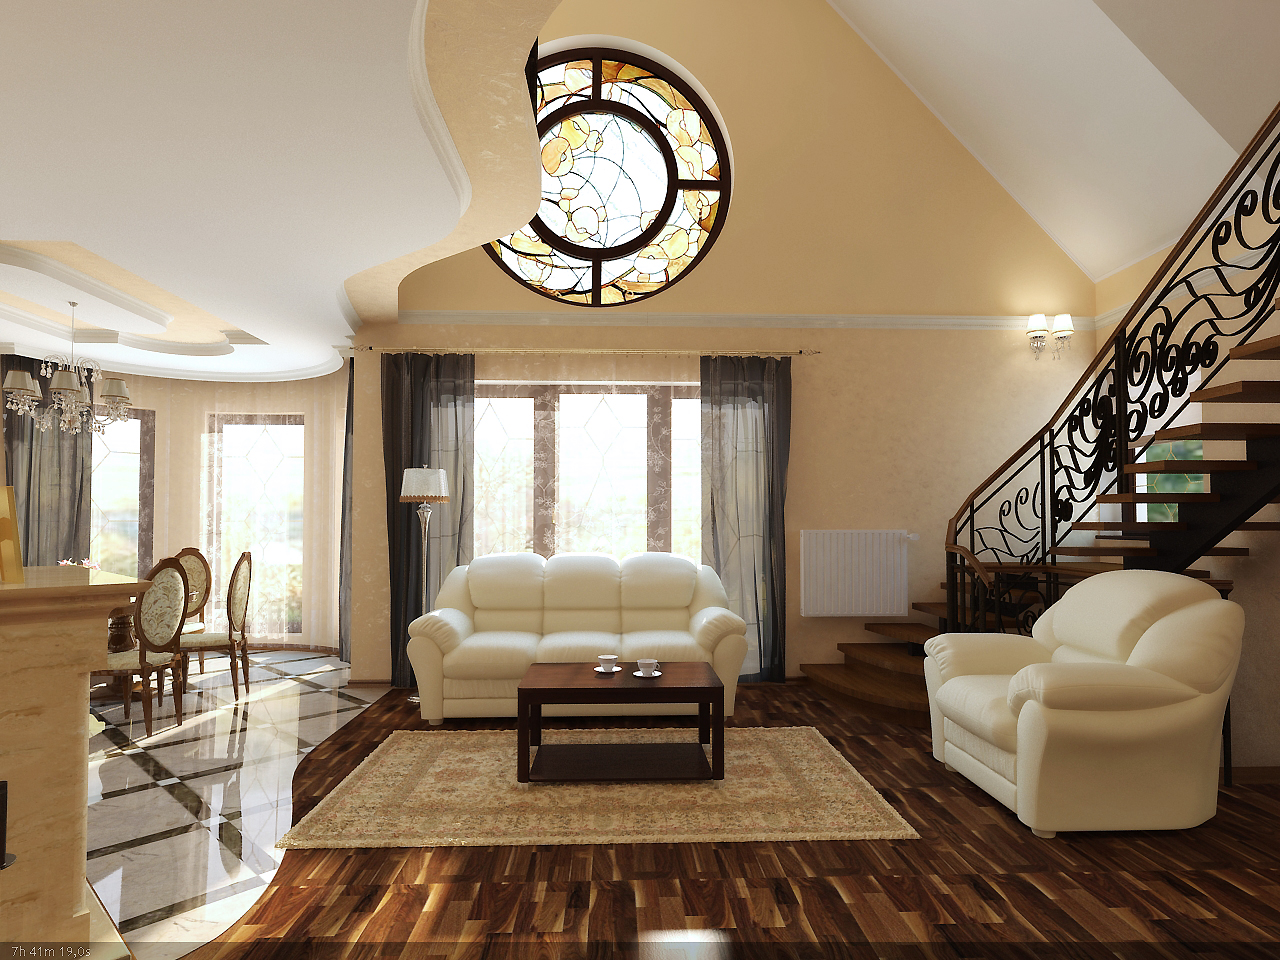 Living Room How To Interior Design A House classic interior design home interior